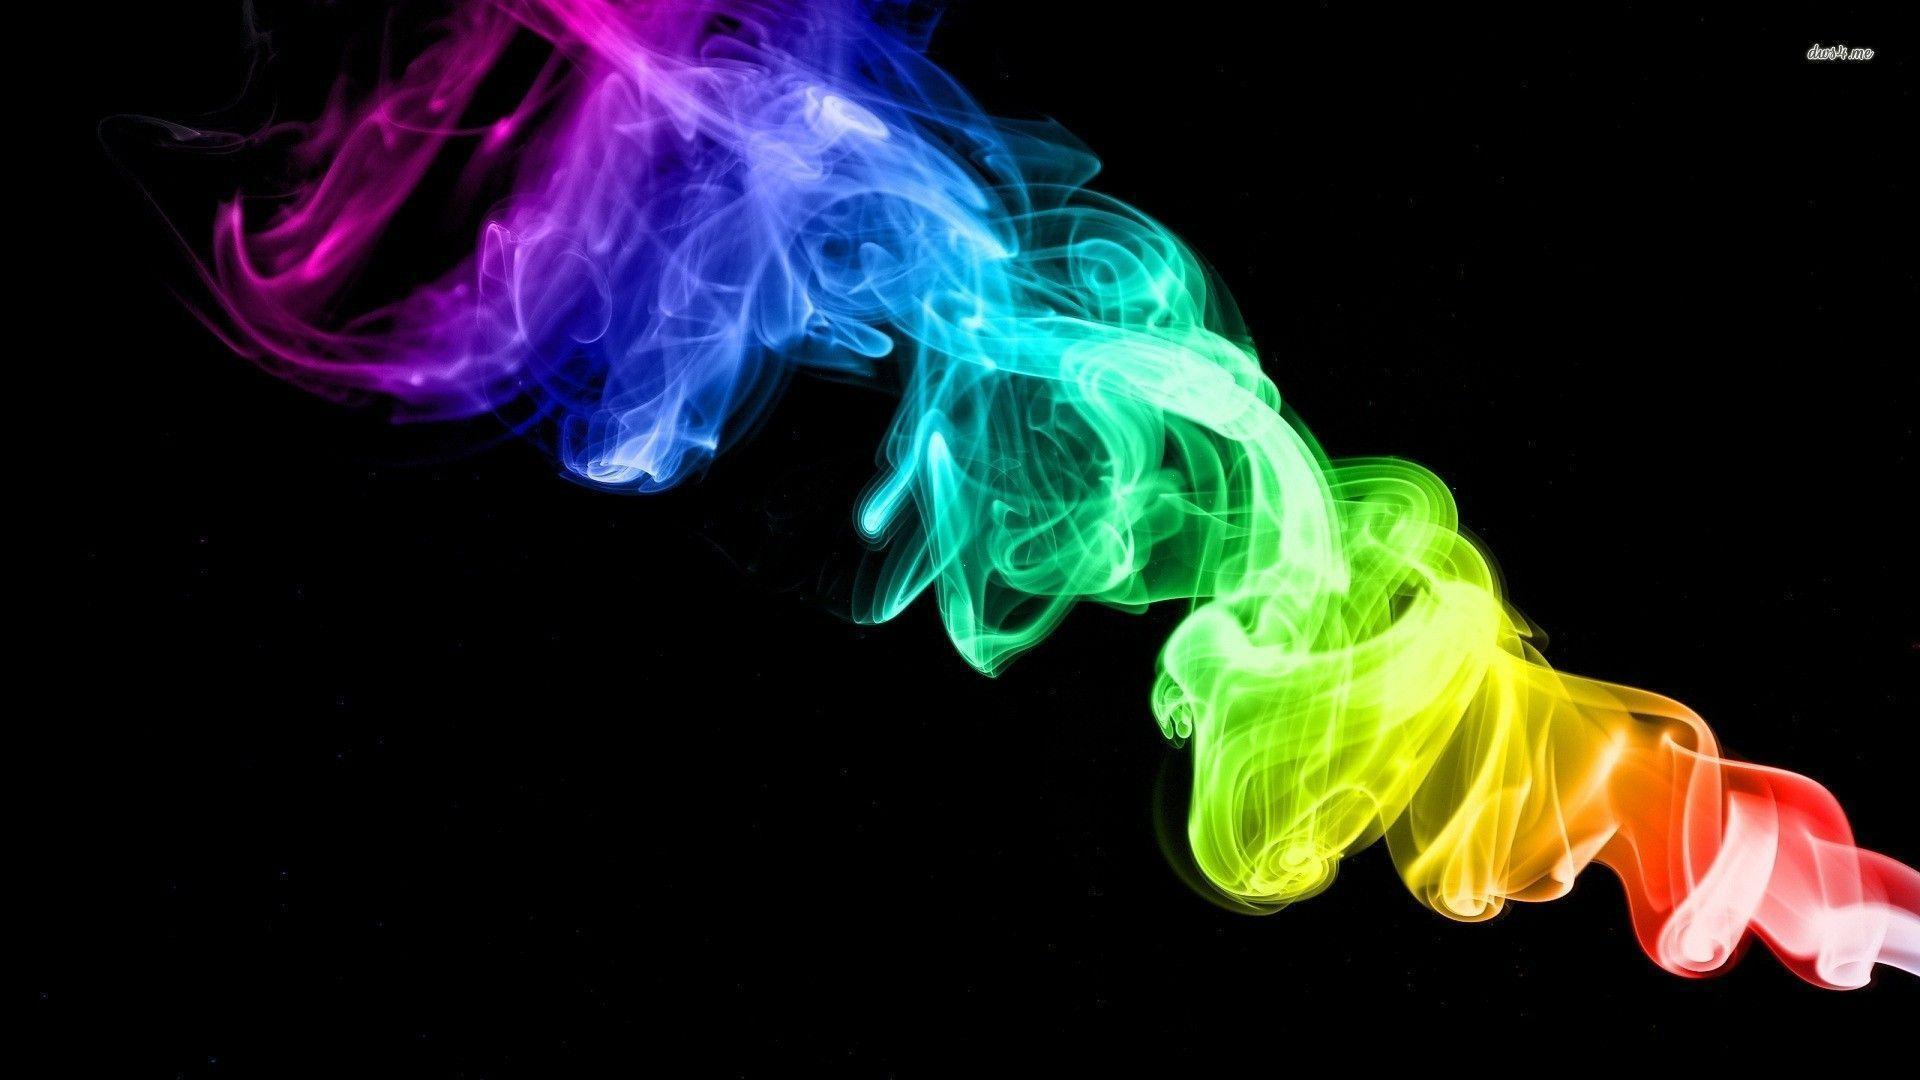 Awesome Neon Backgrounds - Wallpaper Cave